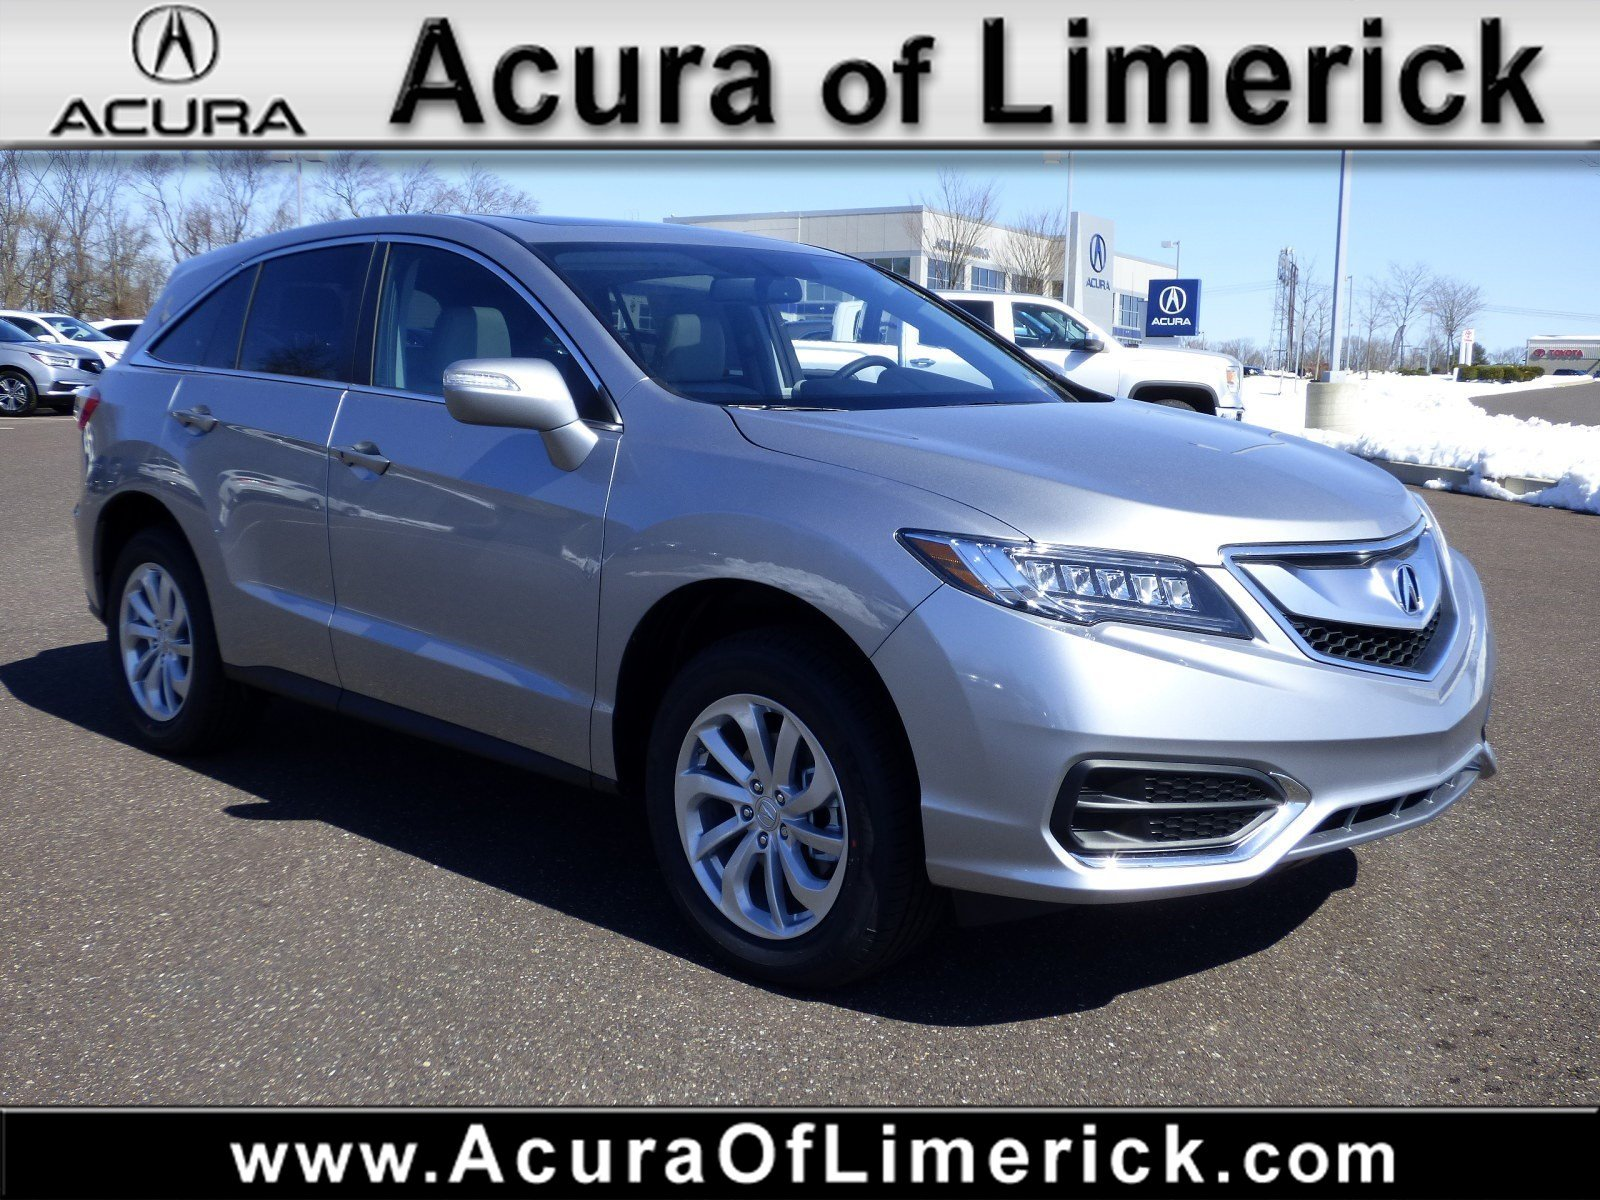 used cargurus rdx awd cars acura kitchener l sale on for